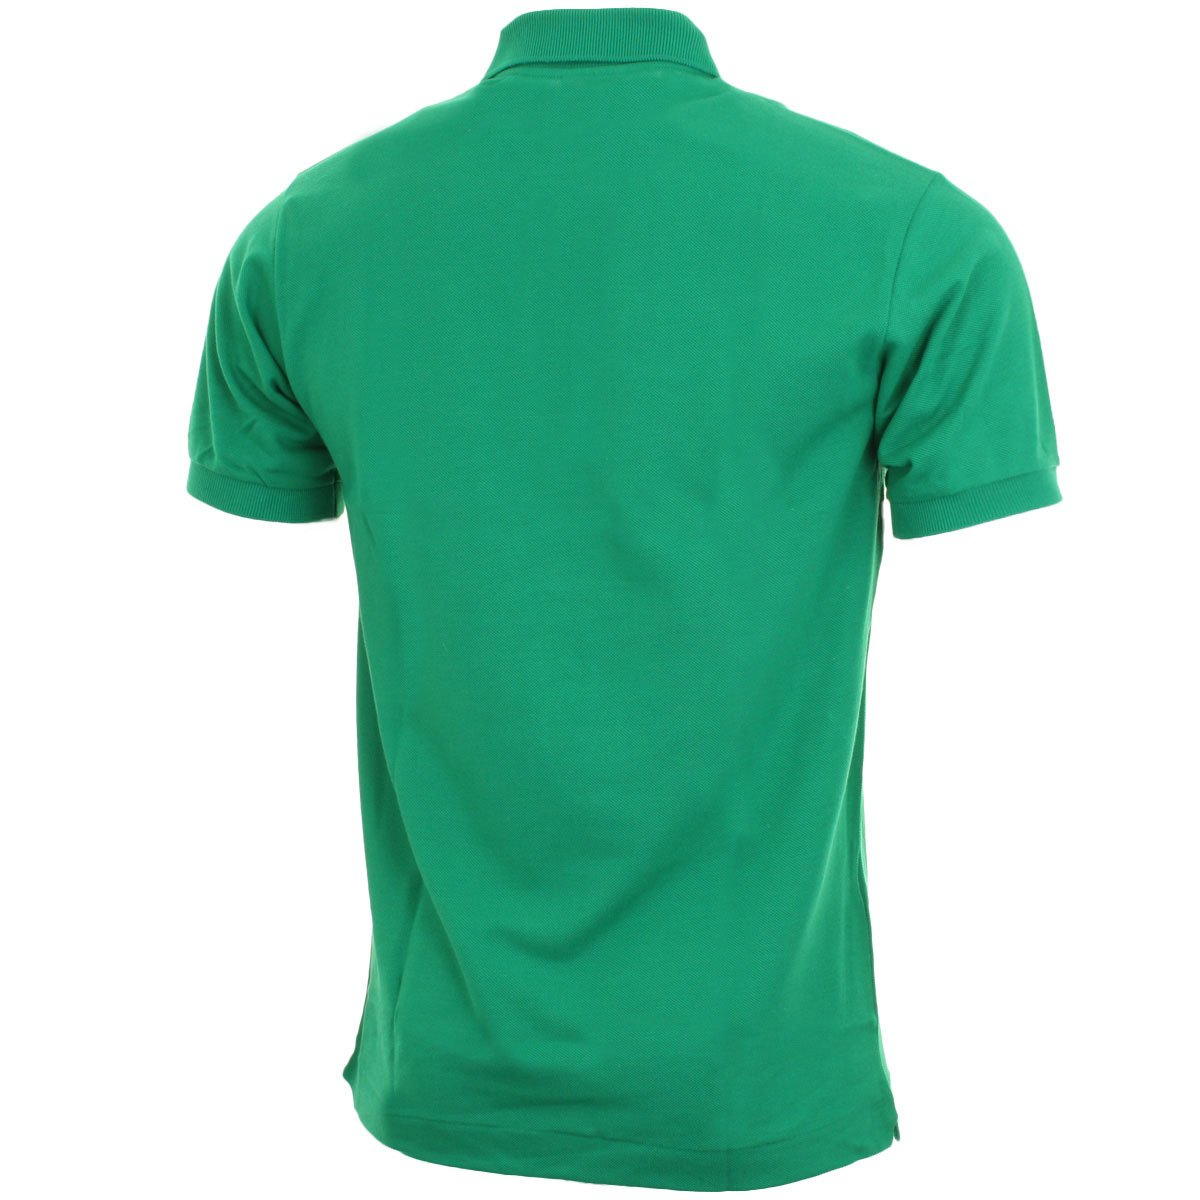 Lacoste-Mens-Classic-Cotton-L1212-Short-Sleeve-Polo-Shirt-31-OFF-RRP thumbnail 27